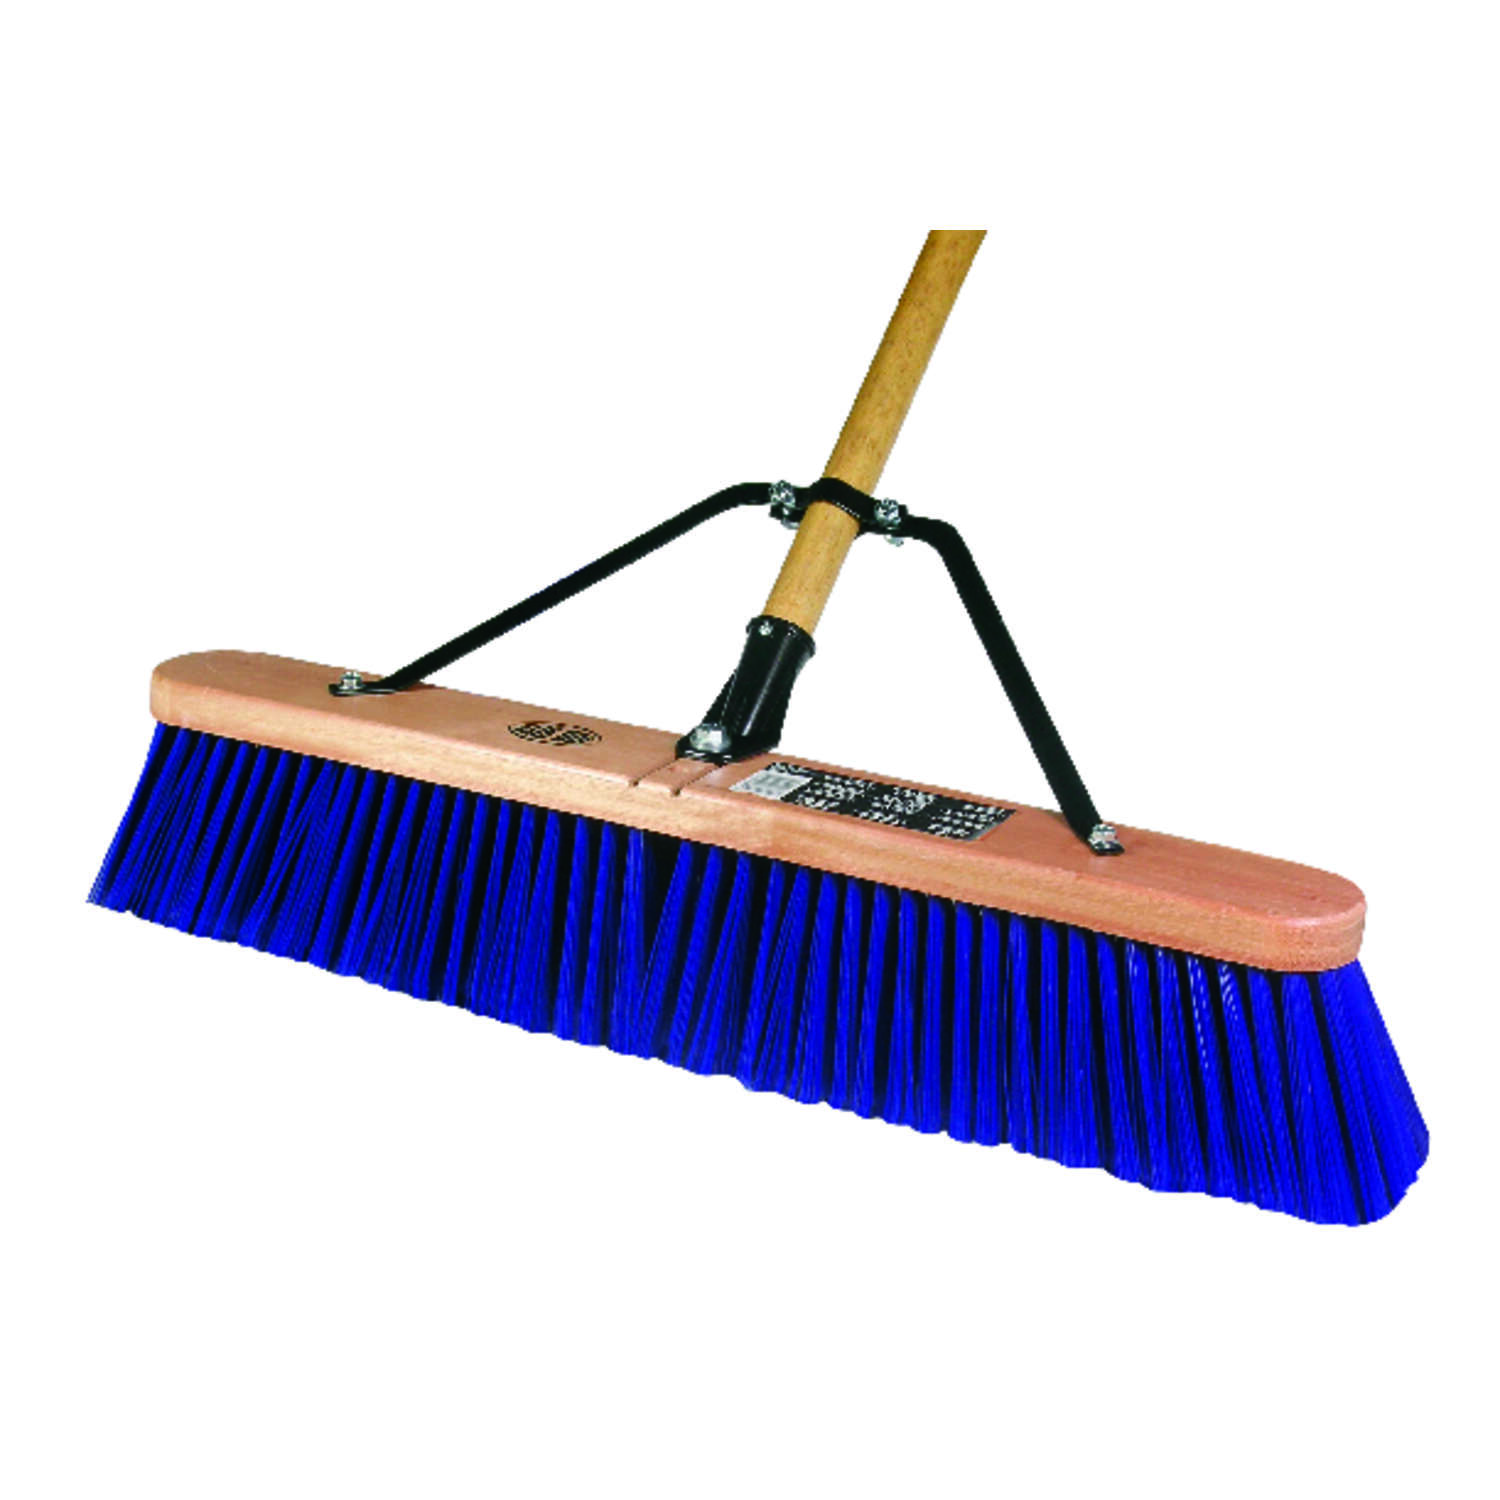 Quickie Jobsite Polypropylene 24 in. Push Broom